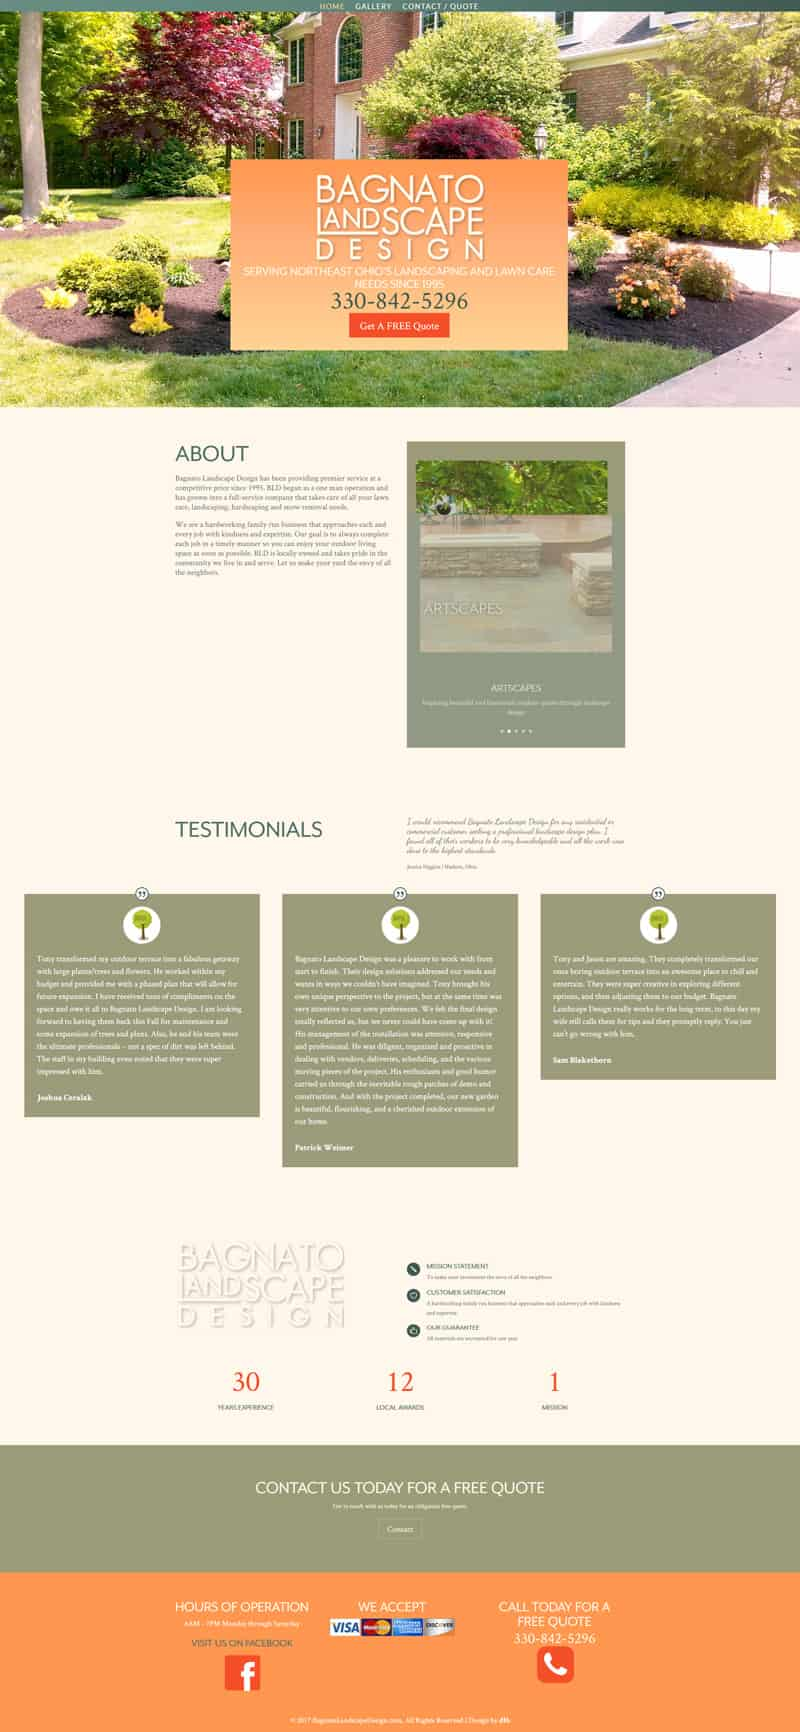 bagnato landscape design home page website design by dlb web media akron ohio